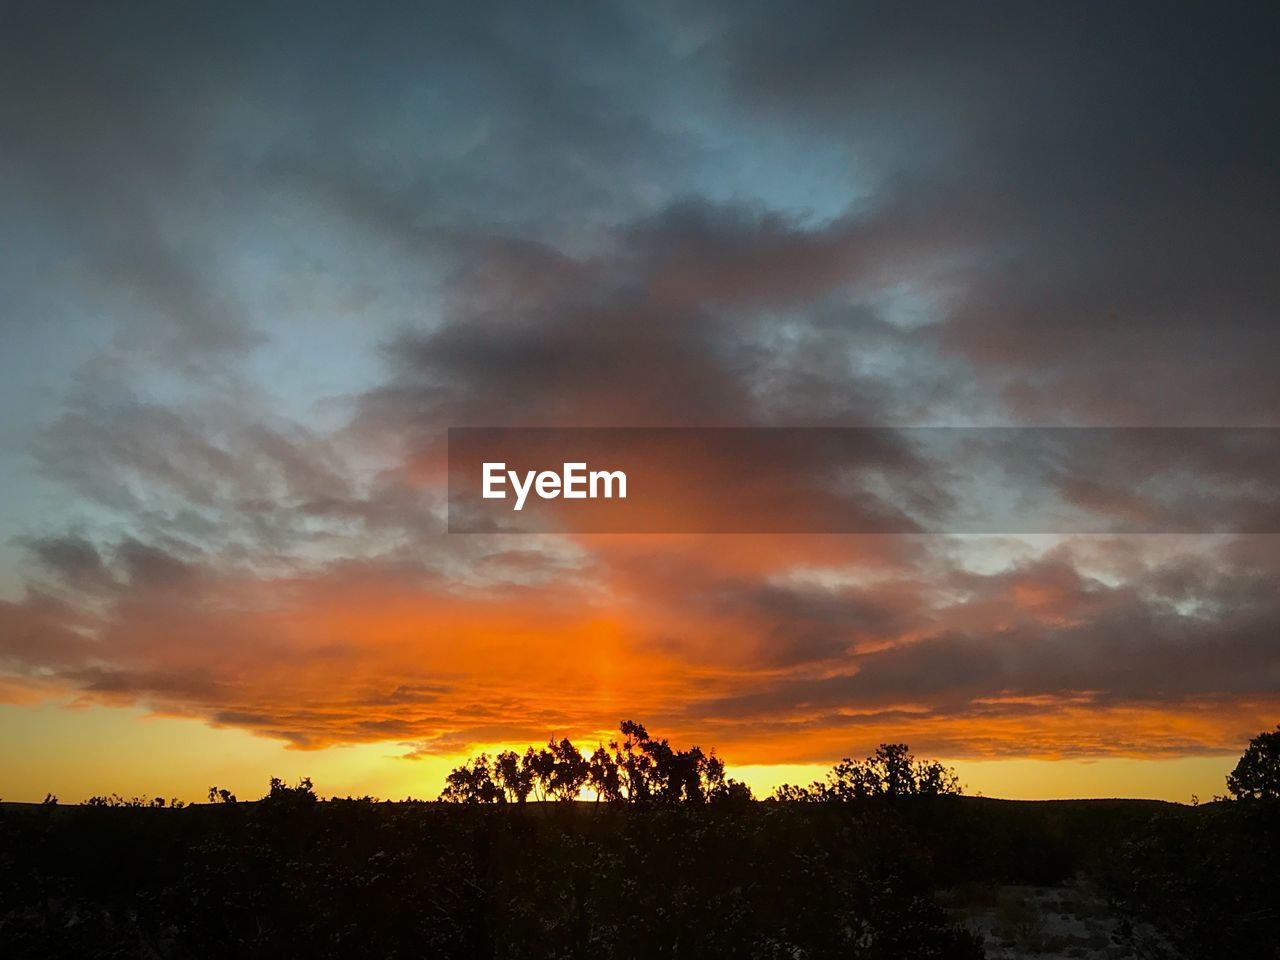 sunset, sky, beauty in nature, cloud - sky, orange color, scenics, nature, tranquility, silhouette, tranquil scene, dramatic sky, tree, landscape, outdoors, no people, day